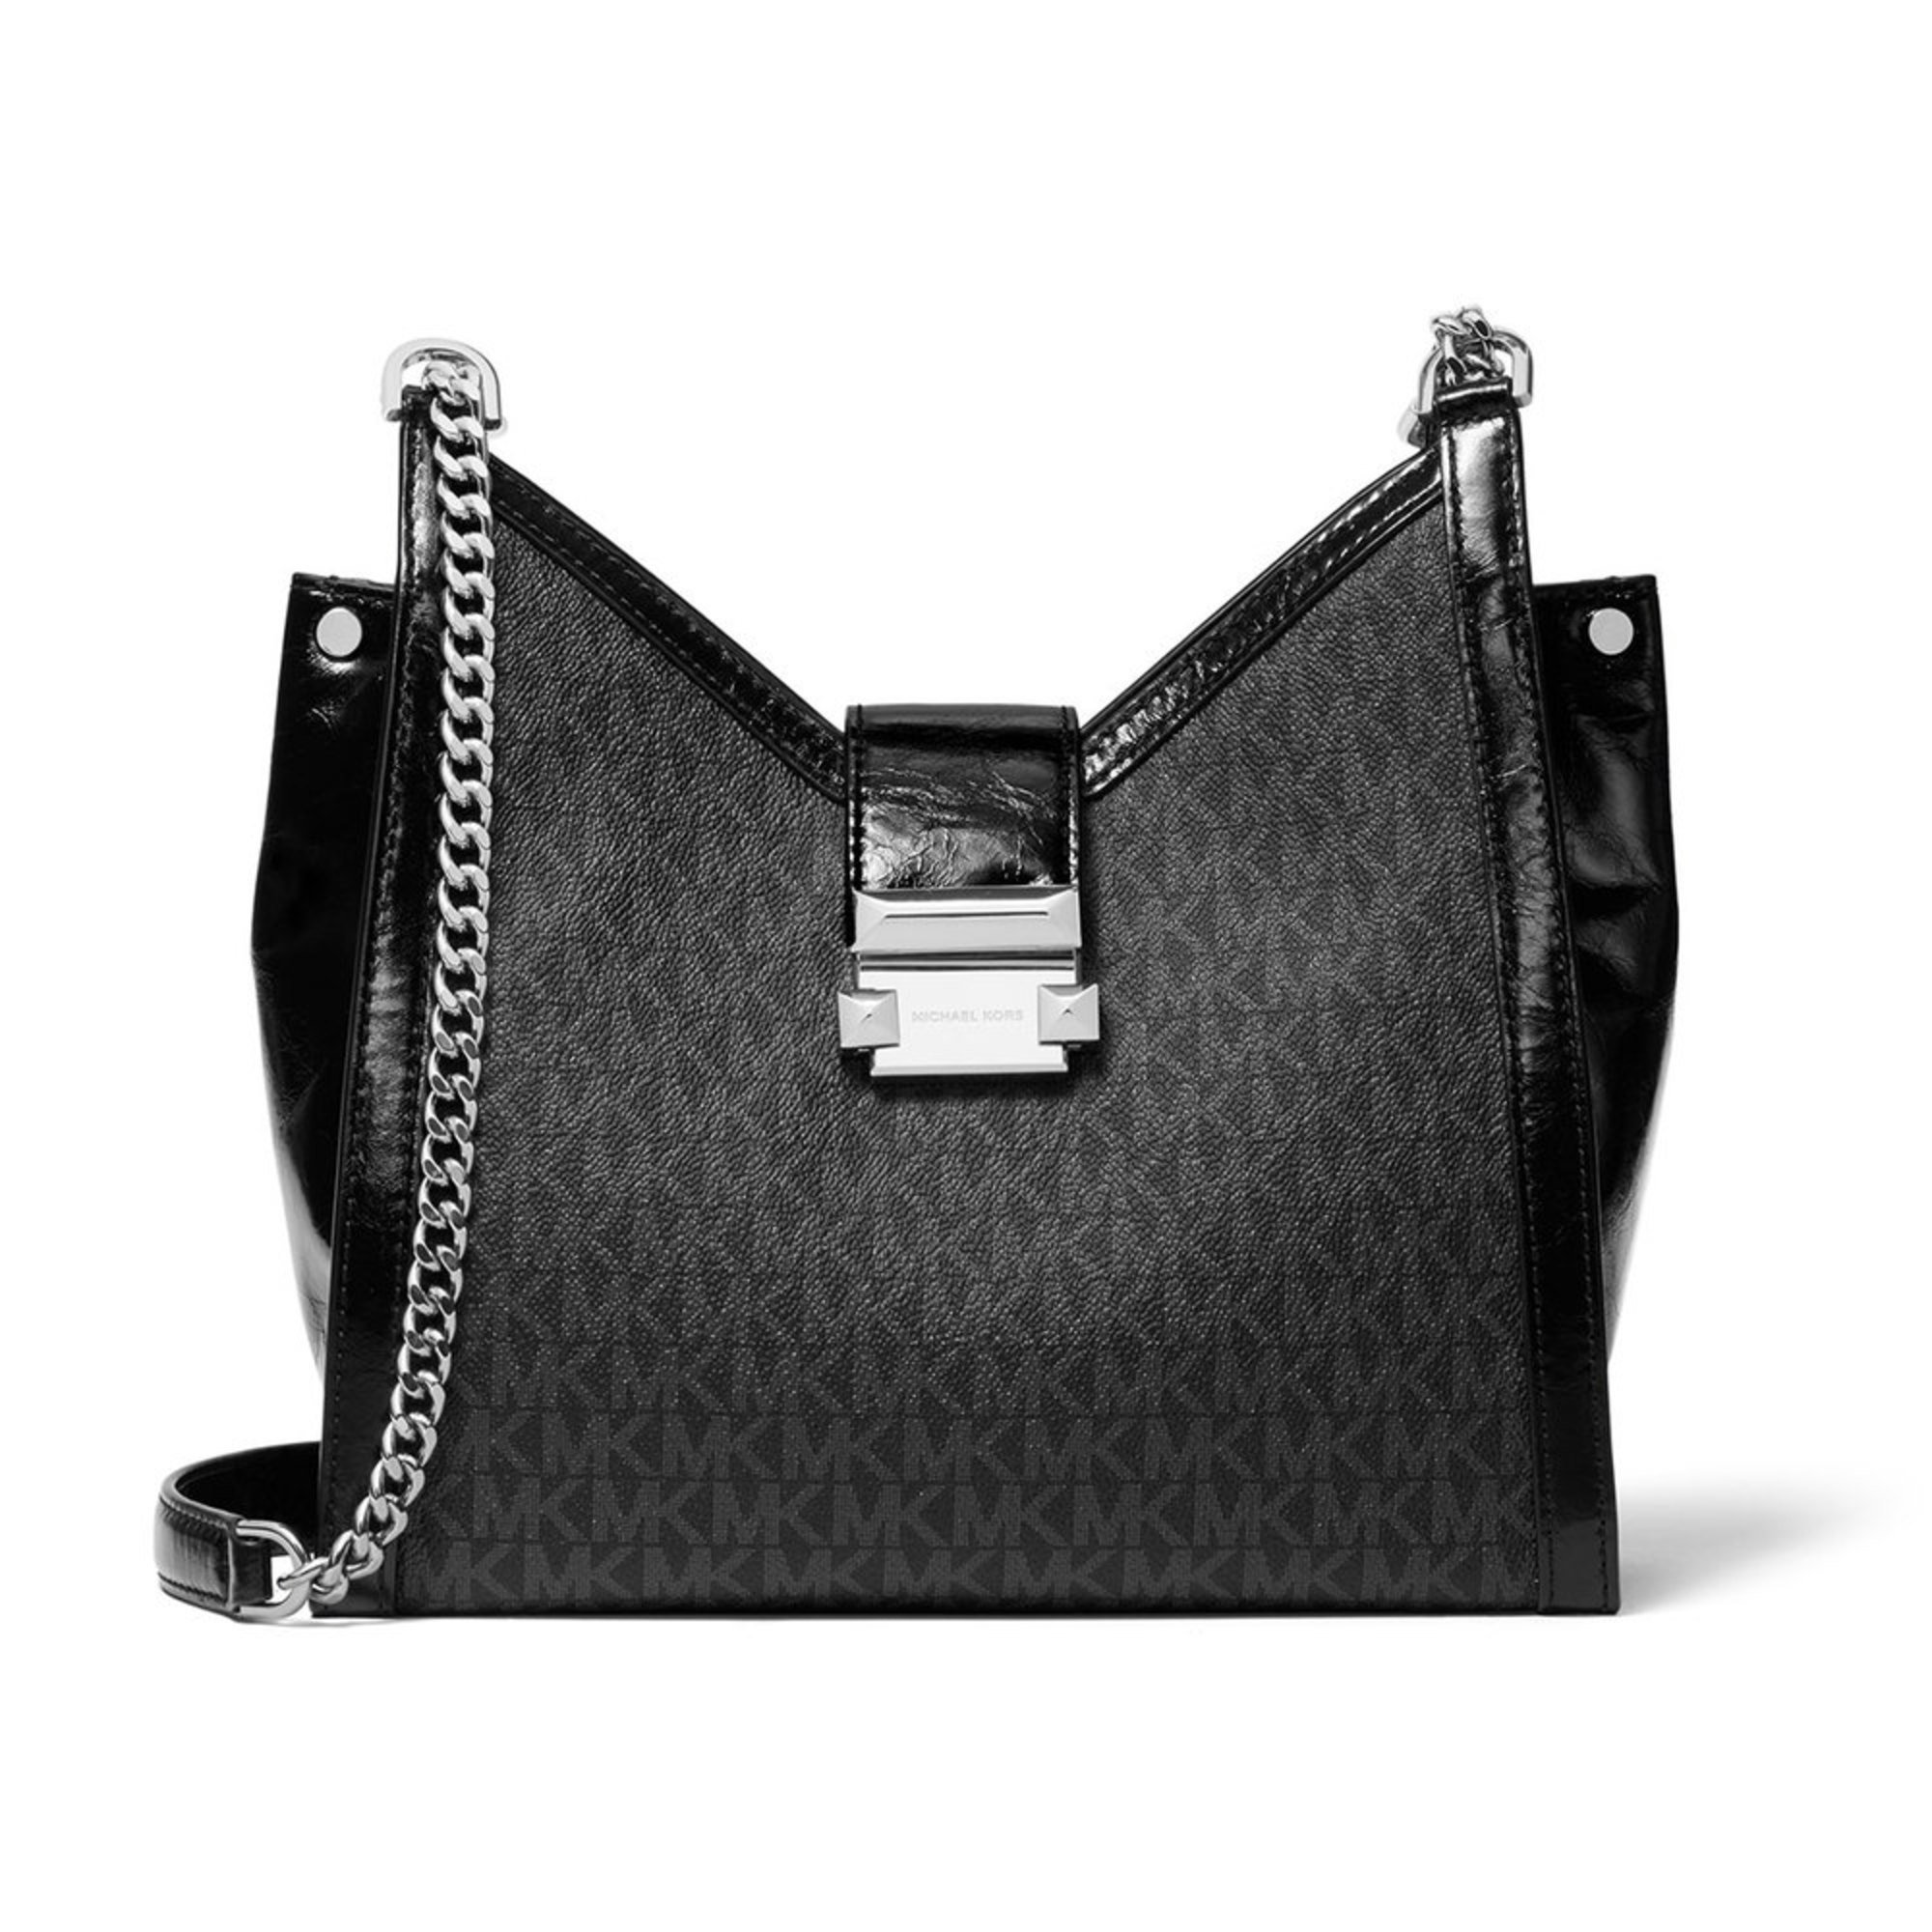 621423be975b Michael Kors Whitney Small Chain Shoulder Tote | Totes | Accessories ...